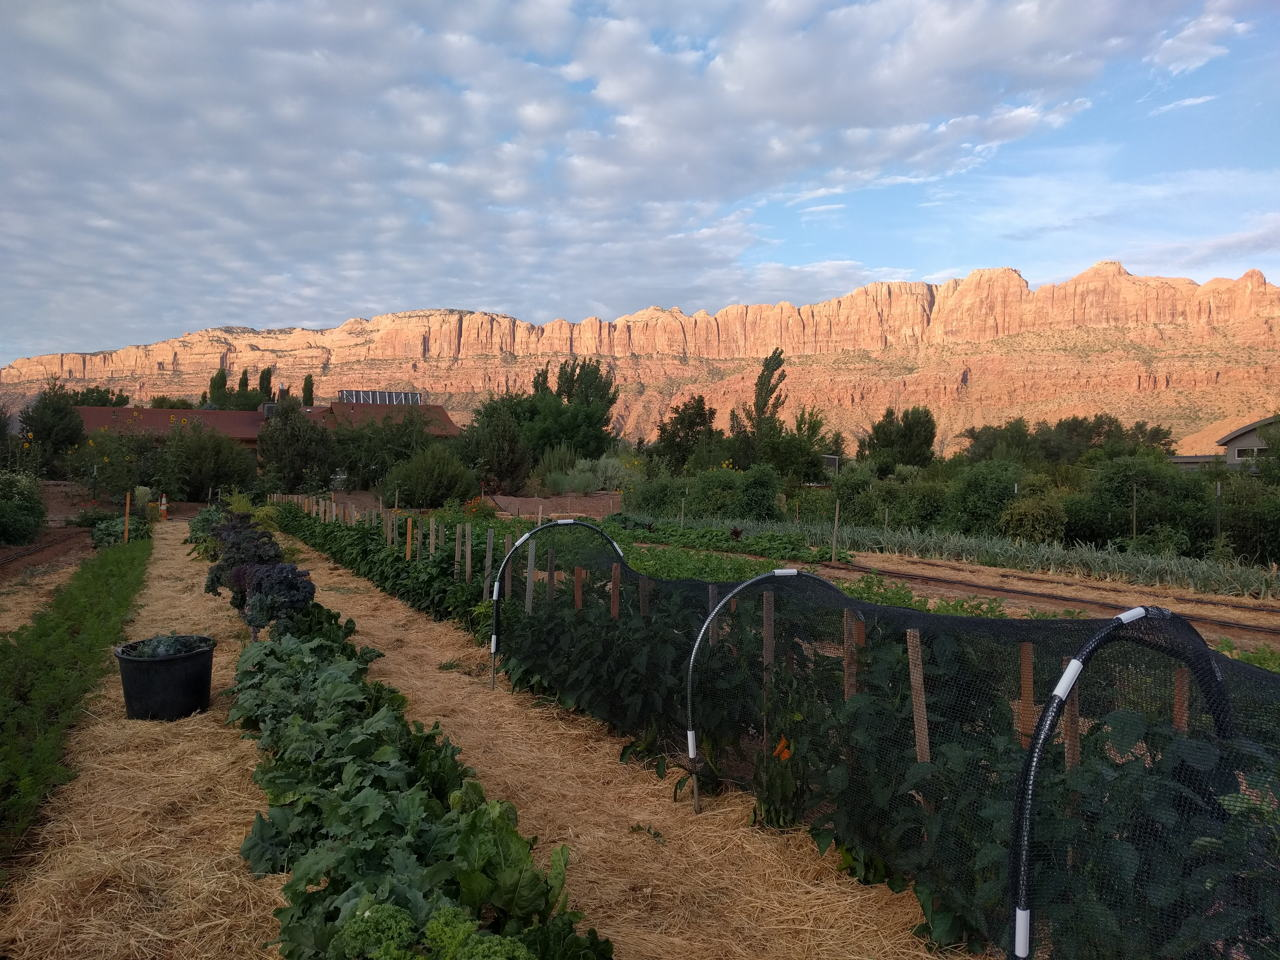 Early morning at Easy Bee Farm in Moab, Utah // read about what it's like to harvest at the farm on www.bridgidgallagher.com >>